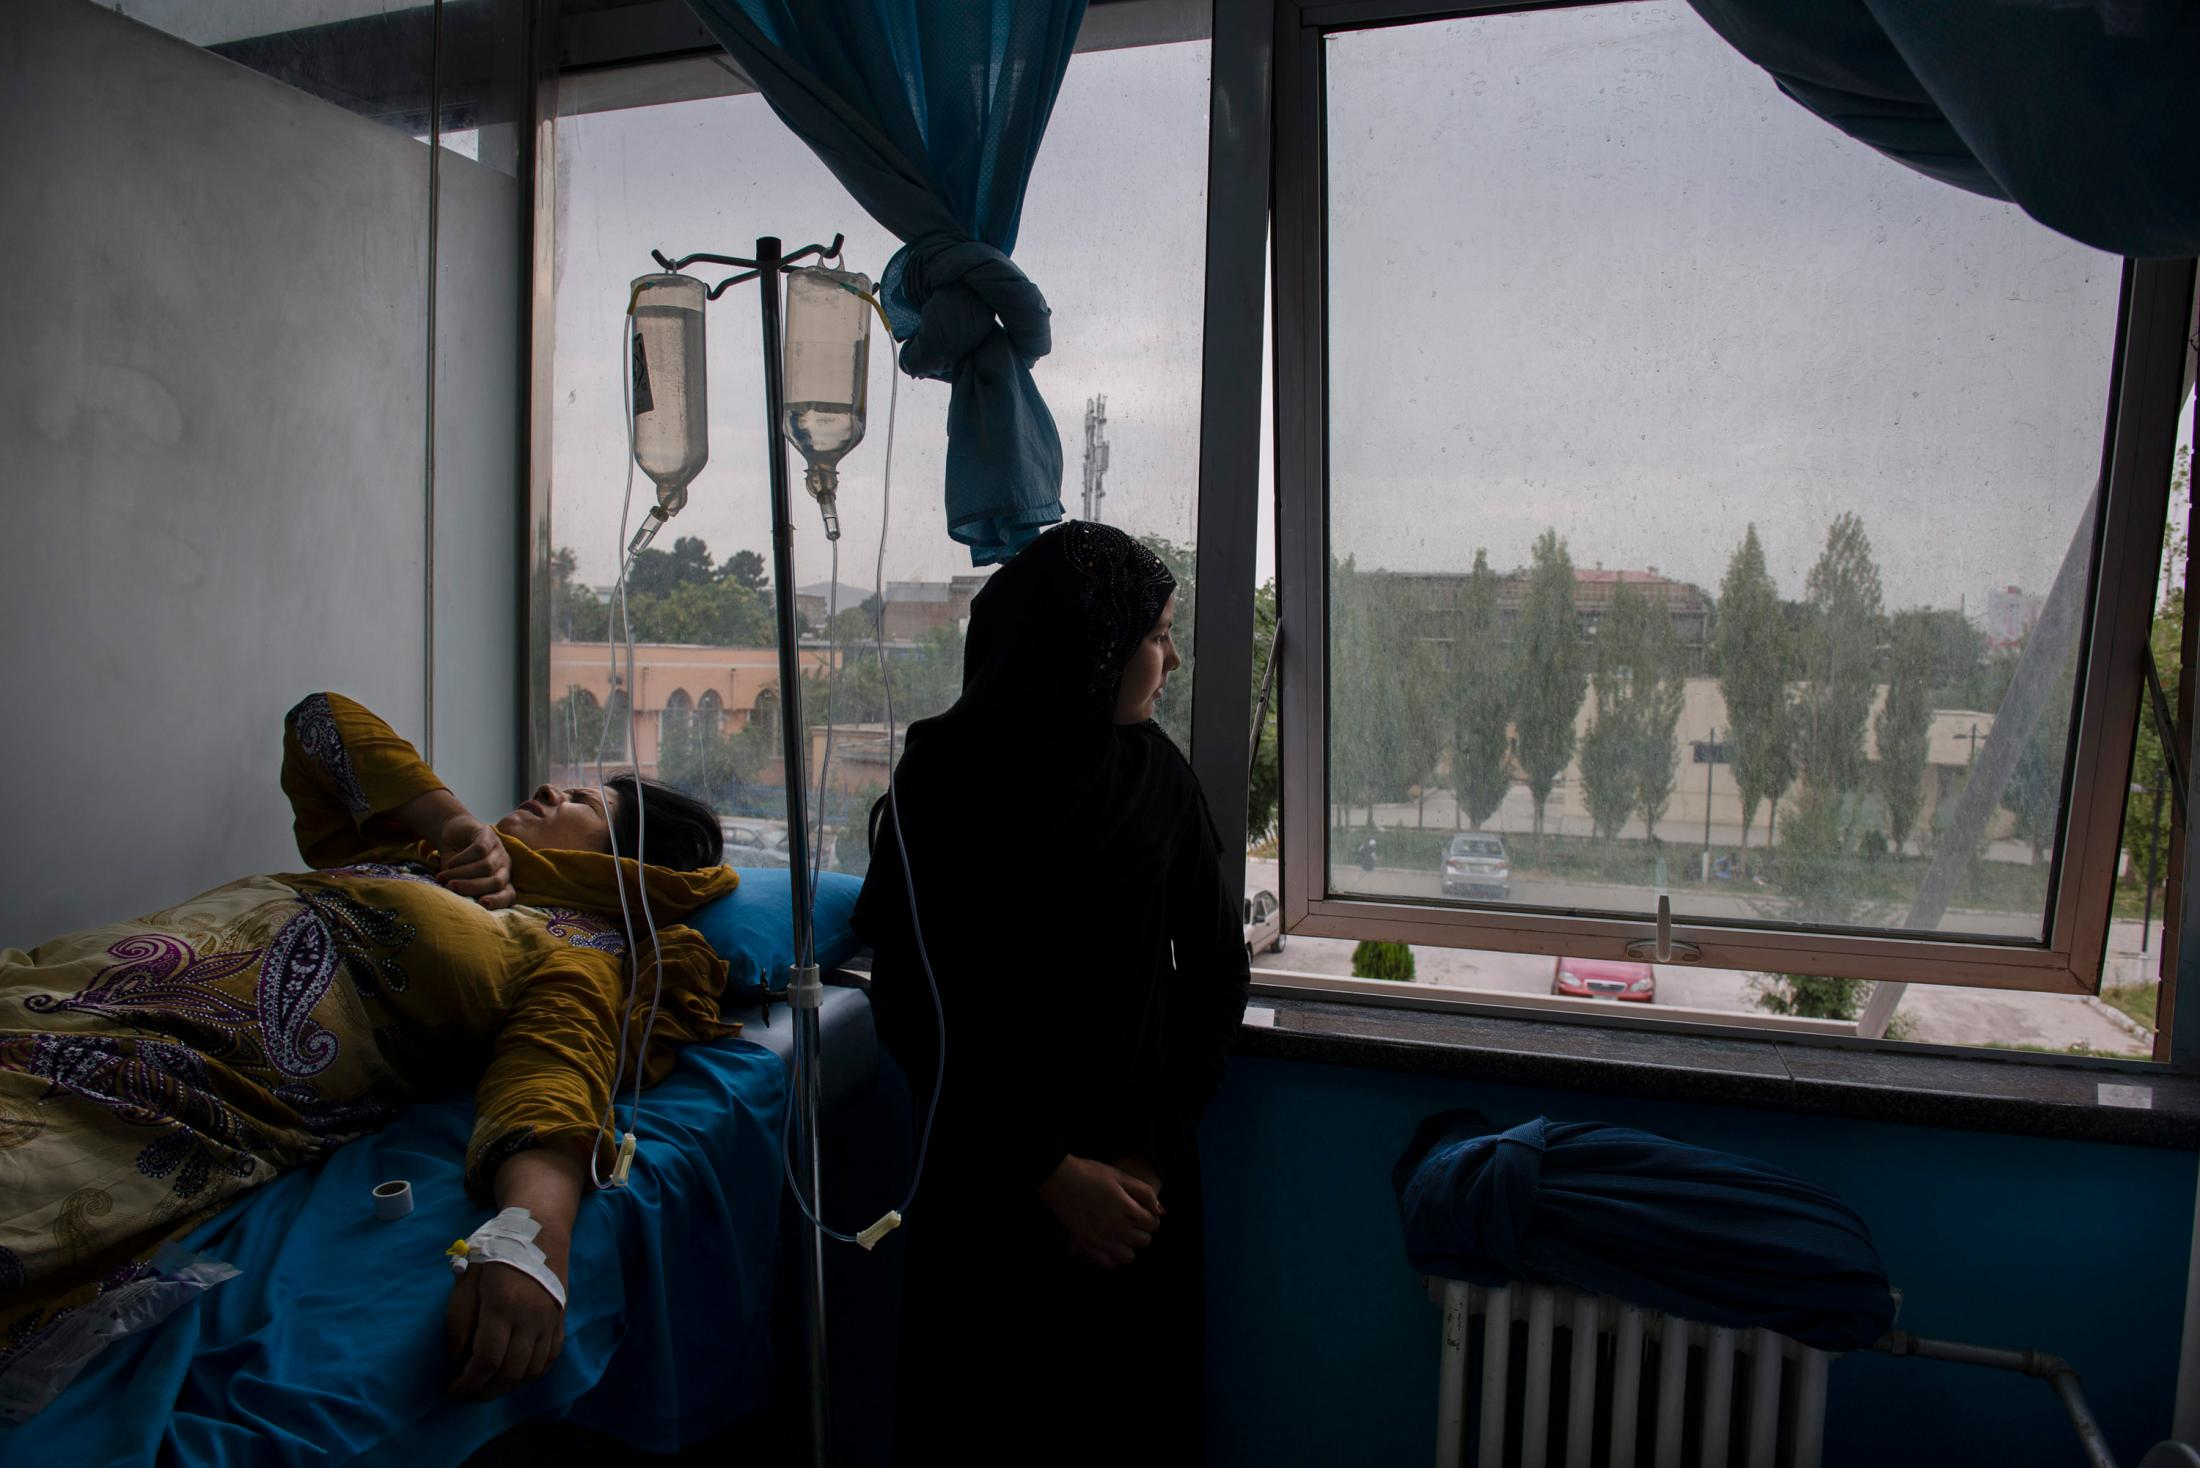 KABUL, AFGHANISTAN | 2017-07-15: 11 year old ???? care for her mother inside the oncology OPD of Jumhuriat Hospital while she receives her first dose of chemo treatment. 38-year-old Fatema was married off at age of 12 to a man 23 years older, Fatema's body have been through 21 pregnancy, with only 12 of the babies surviving. Married to an addicted man and struggling with extreme poverty, she had to give up two of her children at the time of birth and marry off her daughters at young age. Her 11 year old daughter (pictured here) was engaged when she was only 10. When Fatema was diagnosed with breast cancer, it took her 7 months to gather the money needed for her surgery and while she was supposed to be back 20 days later for her first chemo session, she was only able to borrow money for her chemo, a little over 3500 afs ($57), a month and a half later.